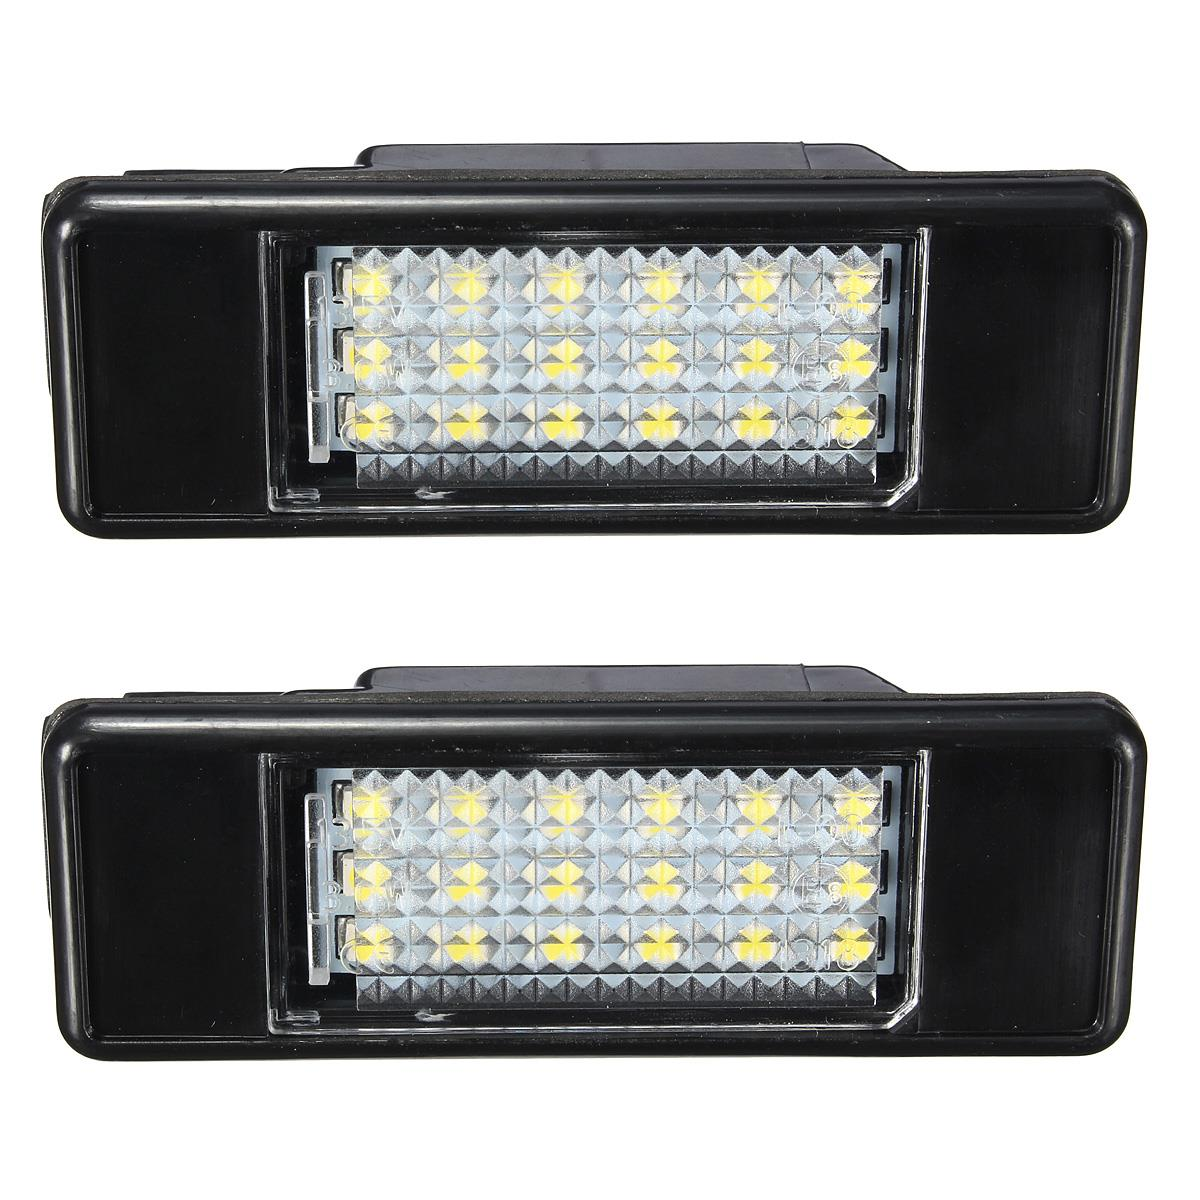 New 2 x LED SMD License Plate Light For Peugeot 106 207 307 308 406 407 508 White smaart v 7 new license